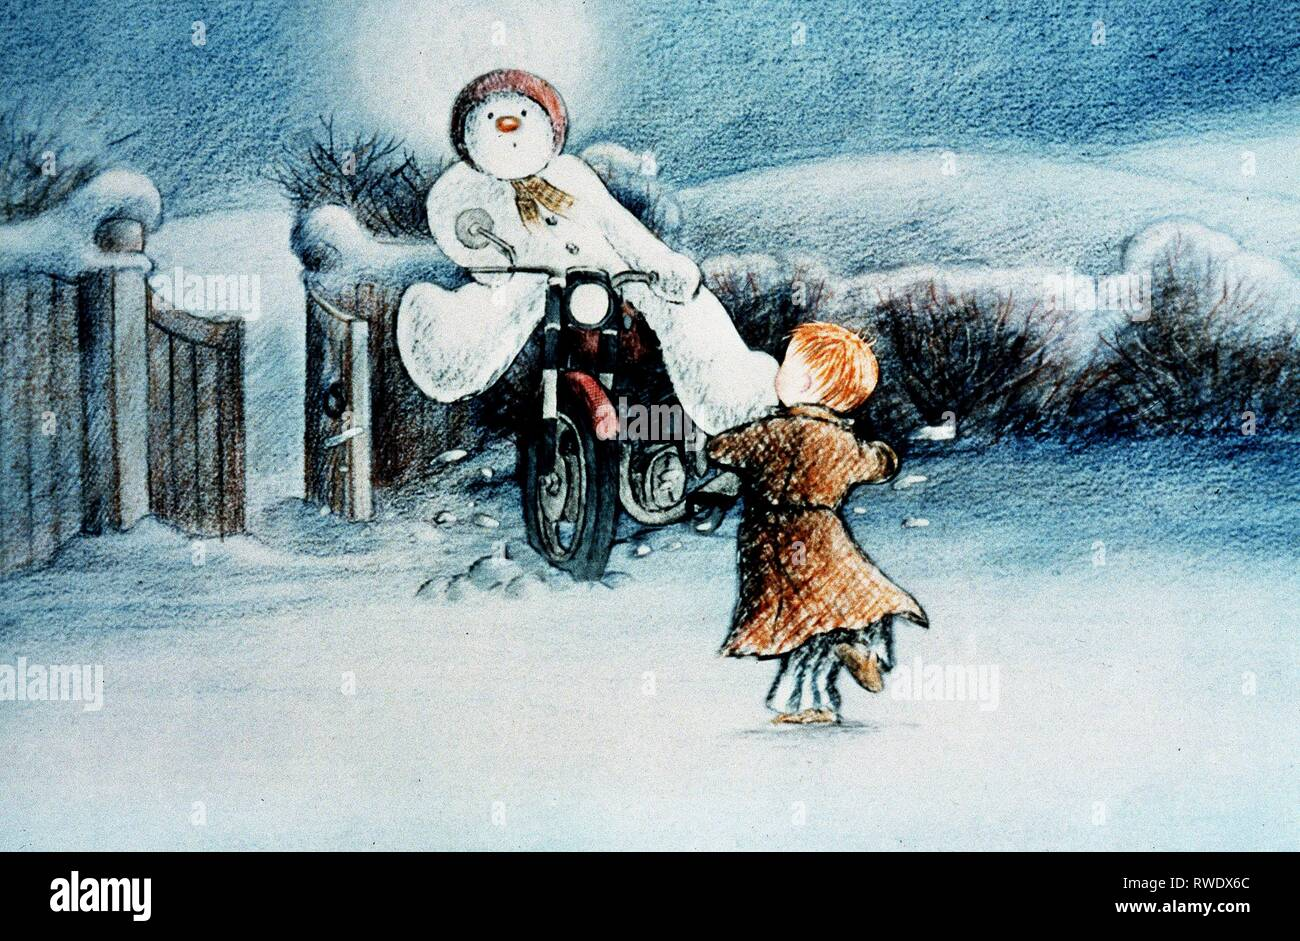 Animation Snow Photos Animation Snow Images Alamy